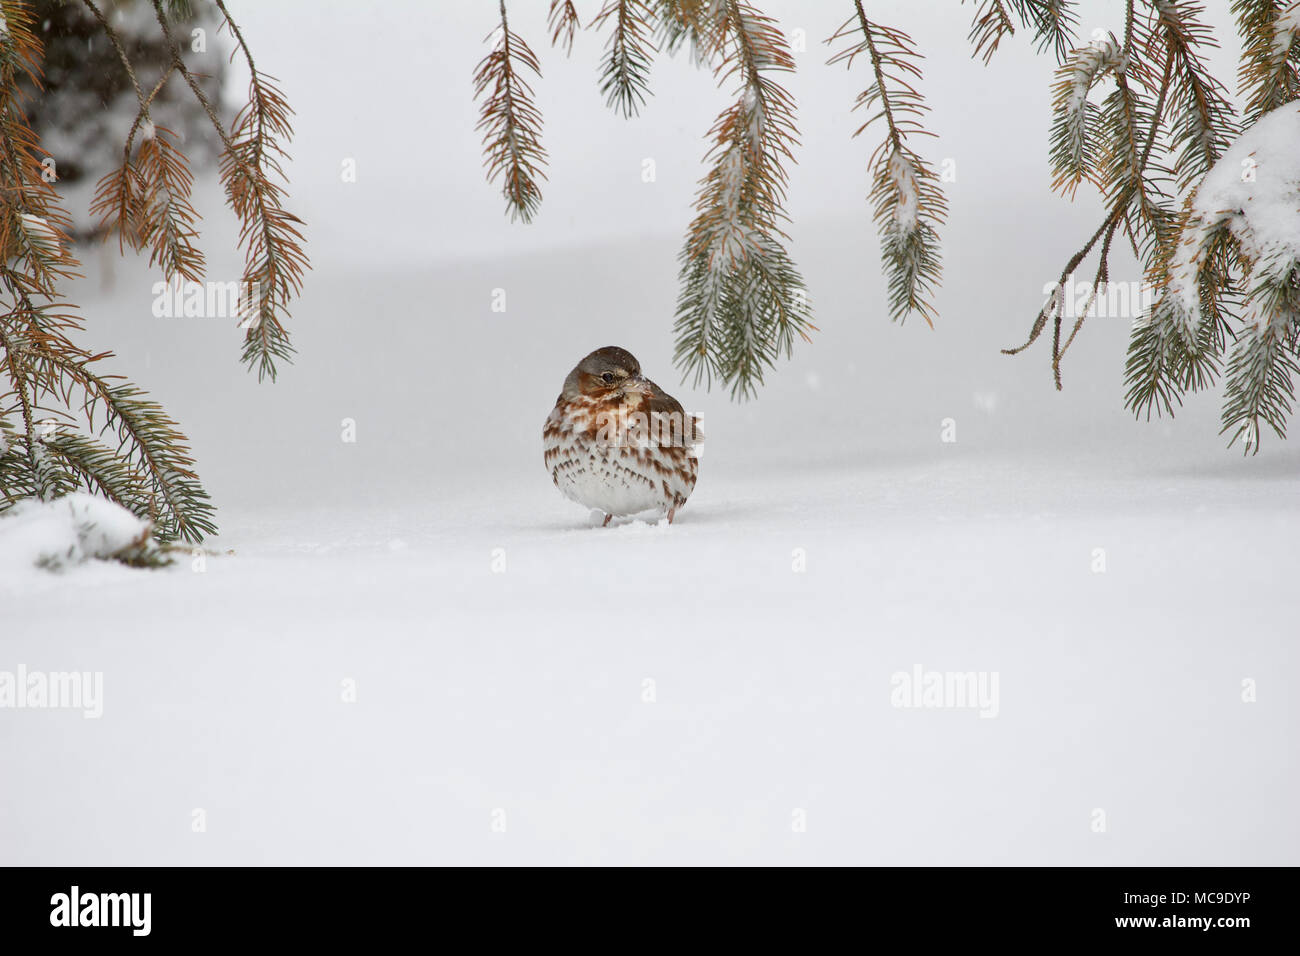 Solitary fox sparrow bird on white snow covered ground under spruce tree branches in a blizzard Stock Photo